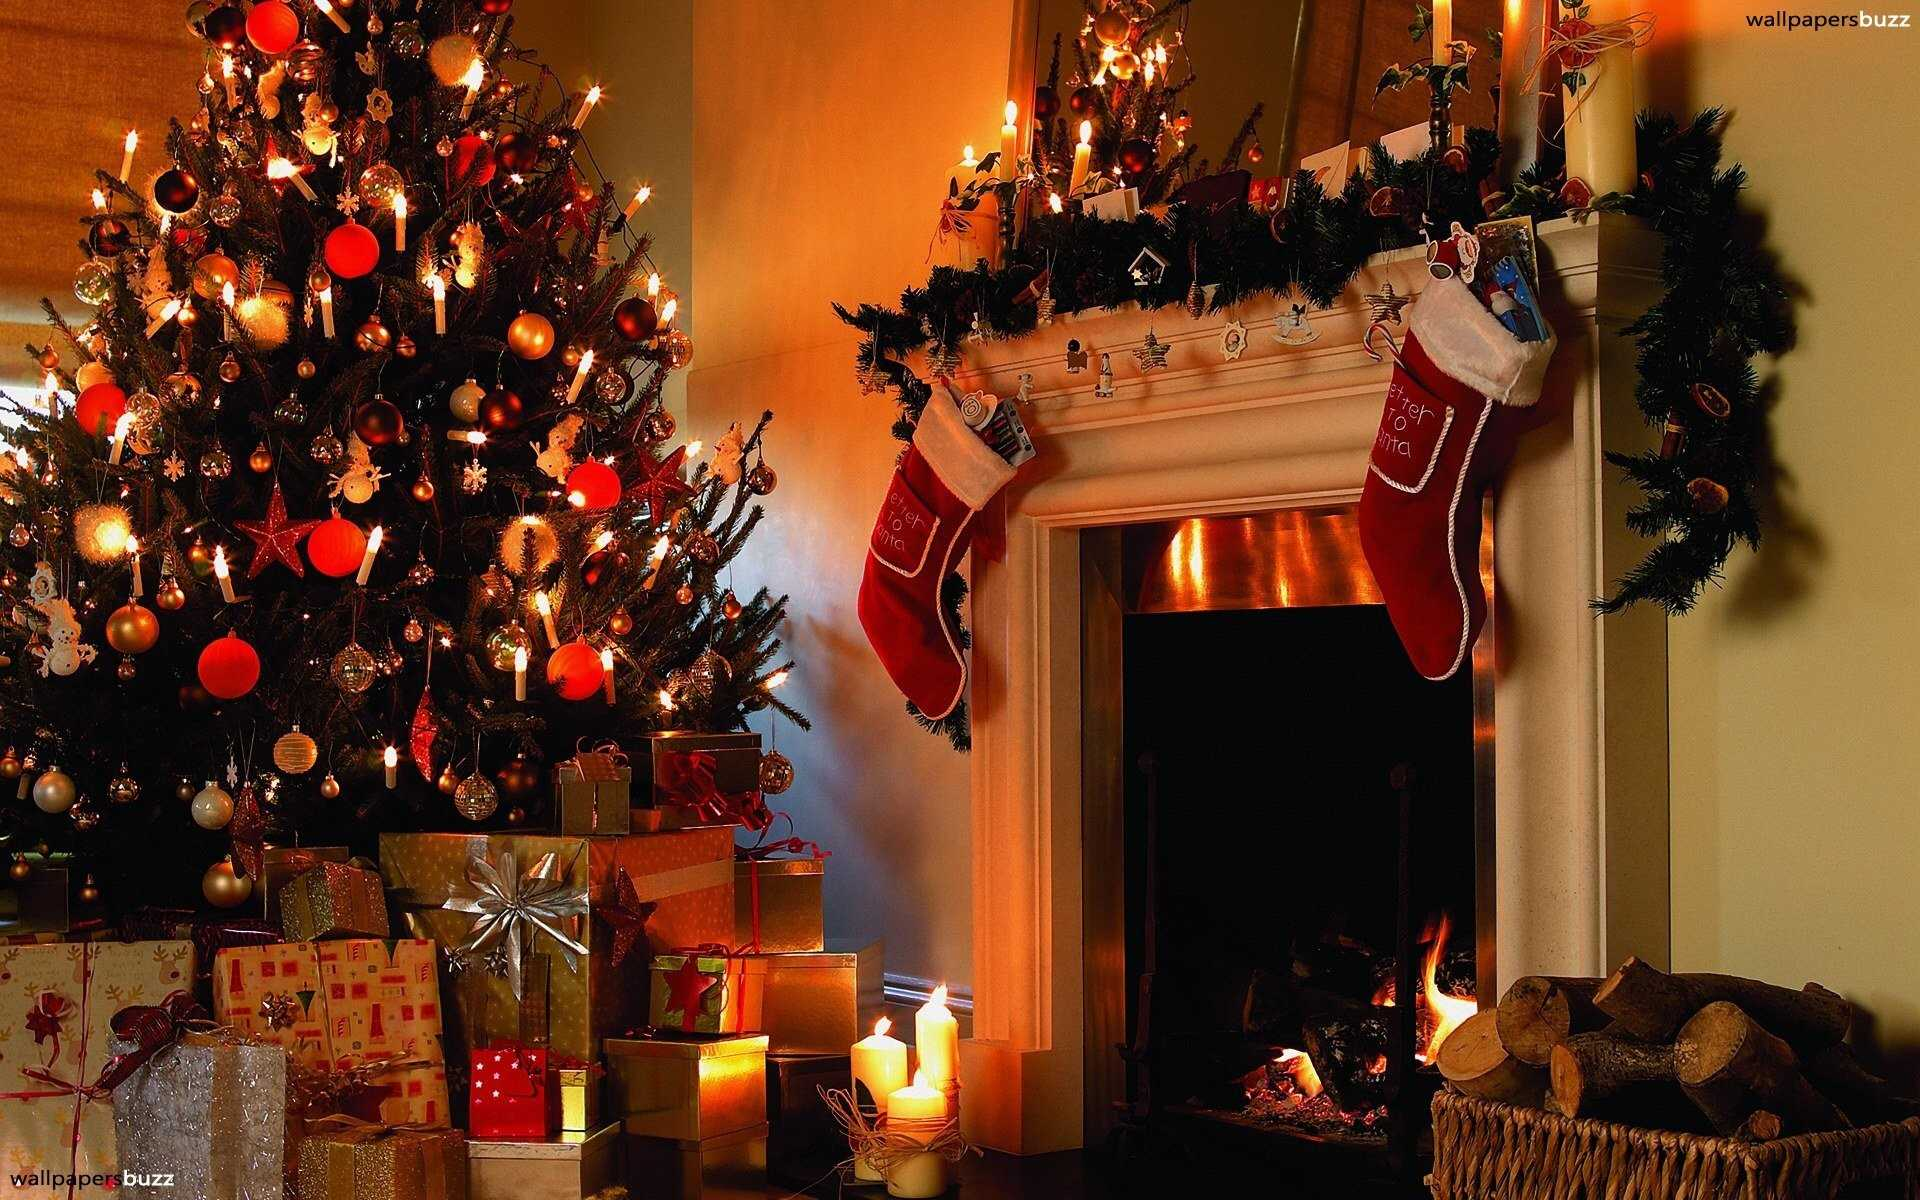 A family hangs stockings by a fireplace for Santa to fill.